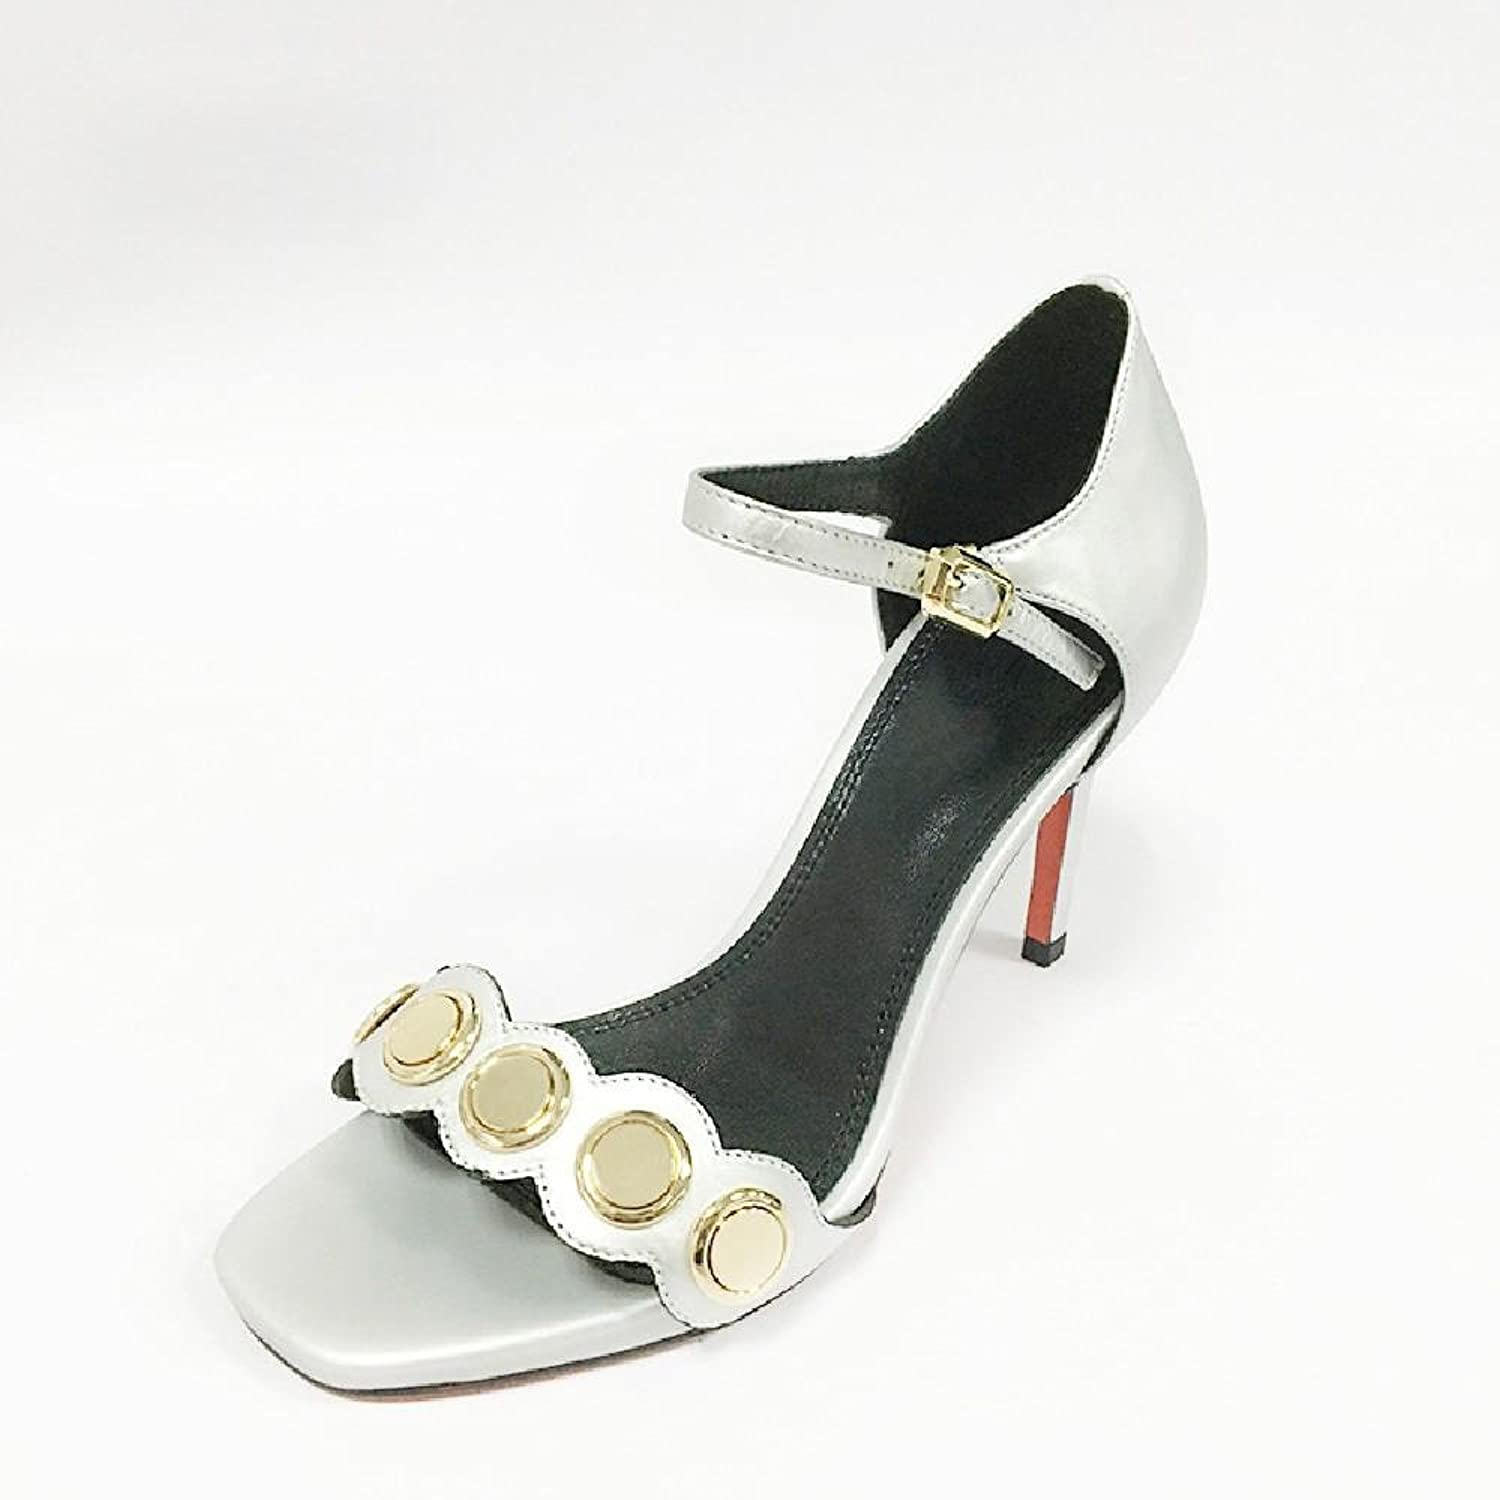 MEIREN shoes leather high heel shoes stiletto metal buckle Sheepskin square peep-toe sandals